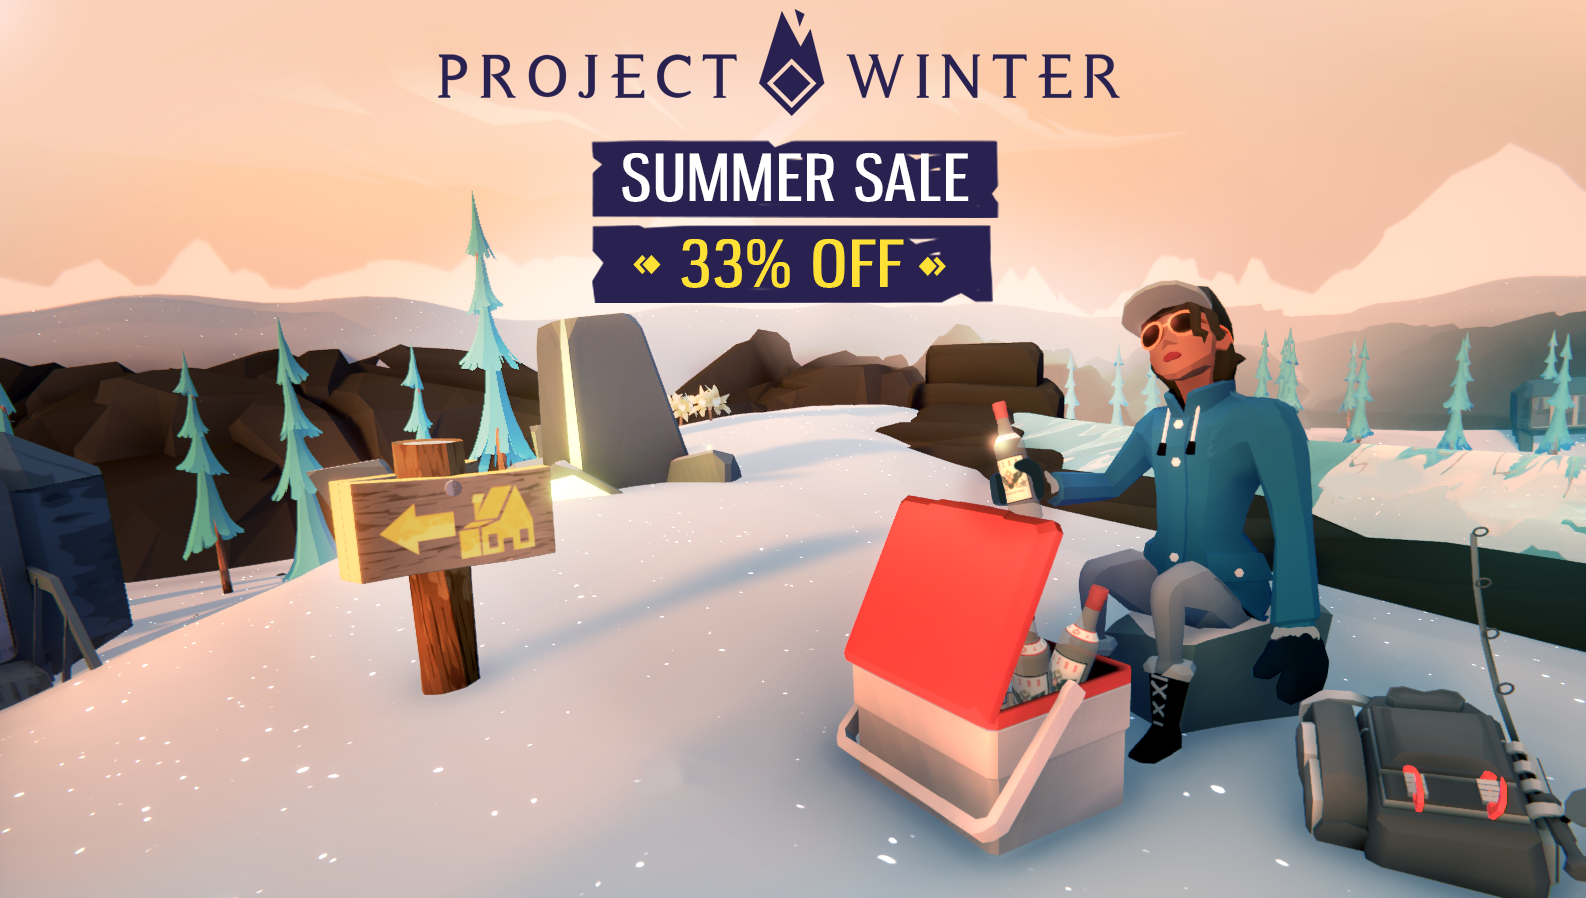 Project Winter Summer Sale